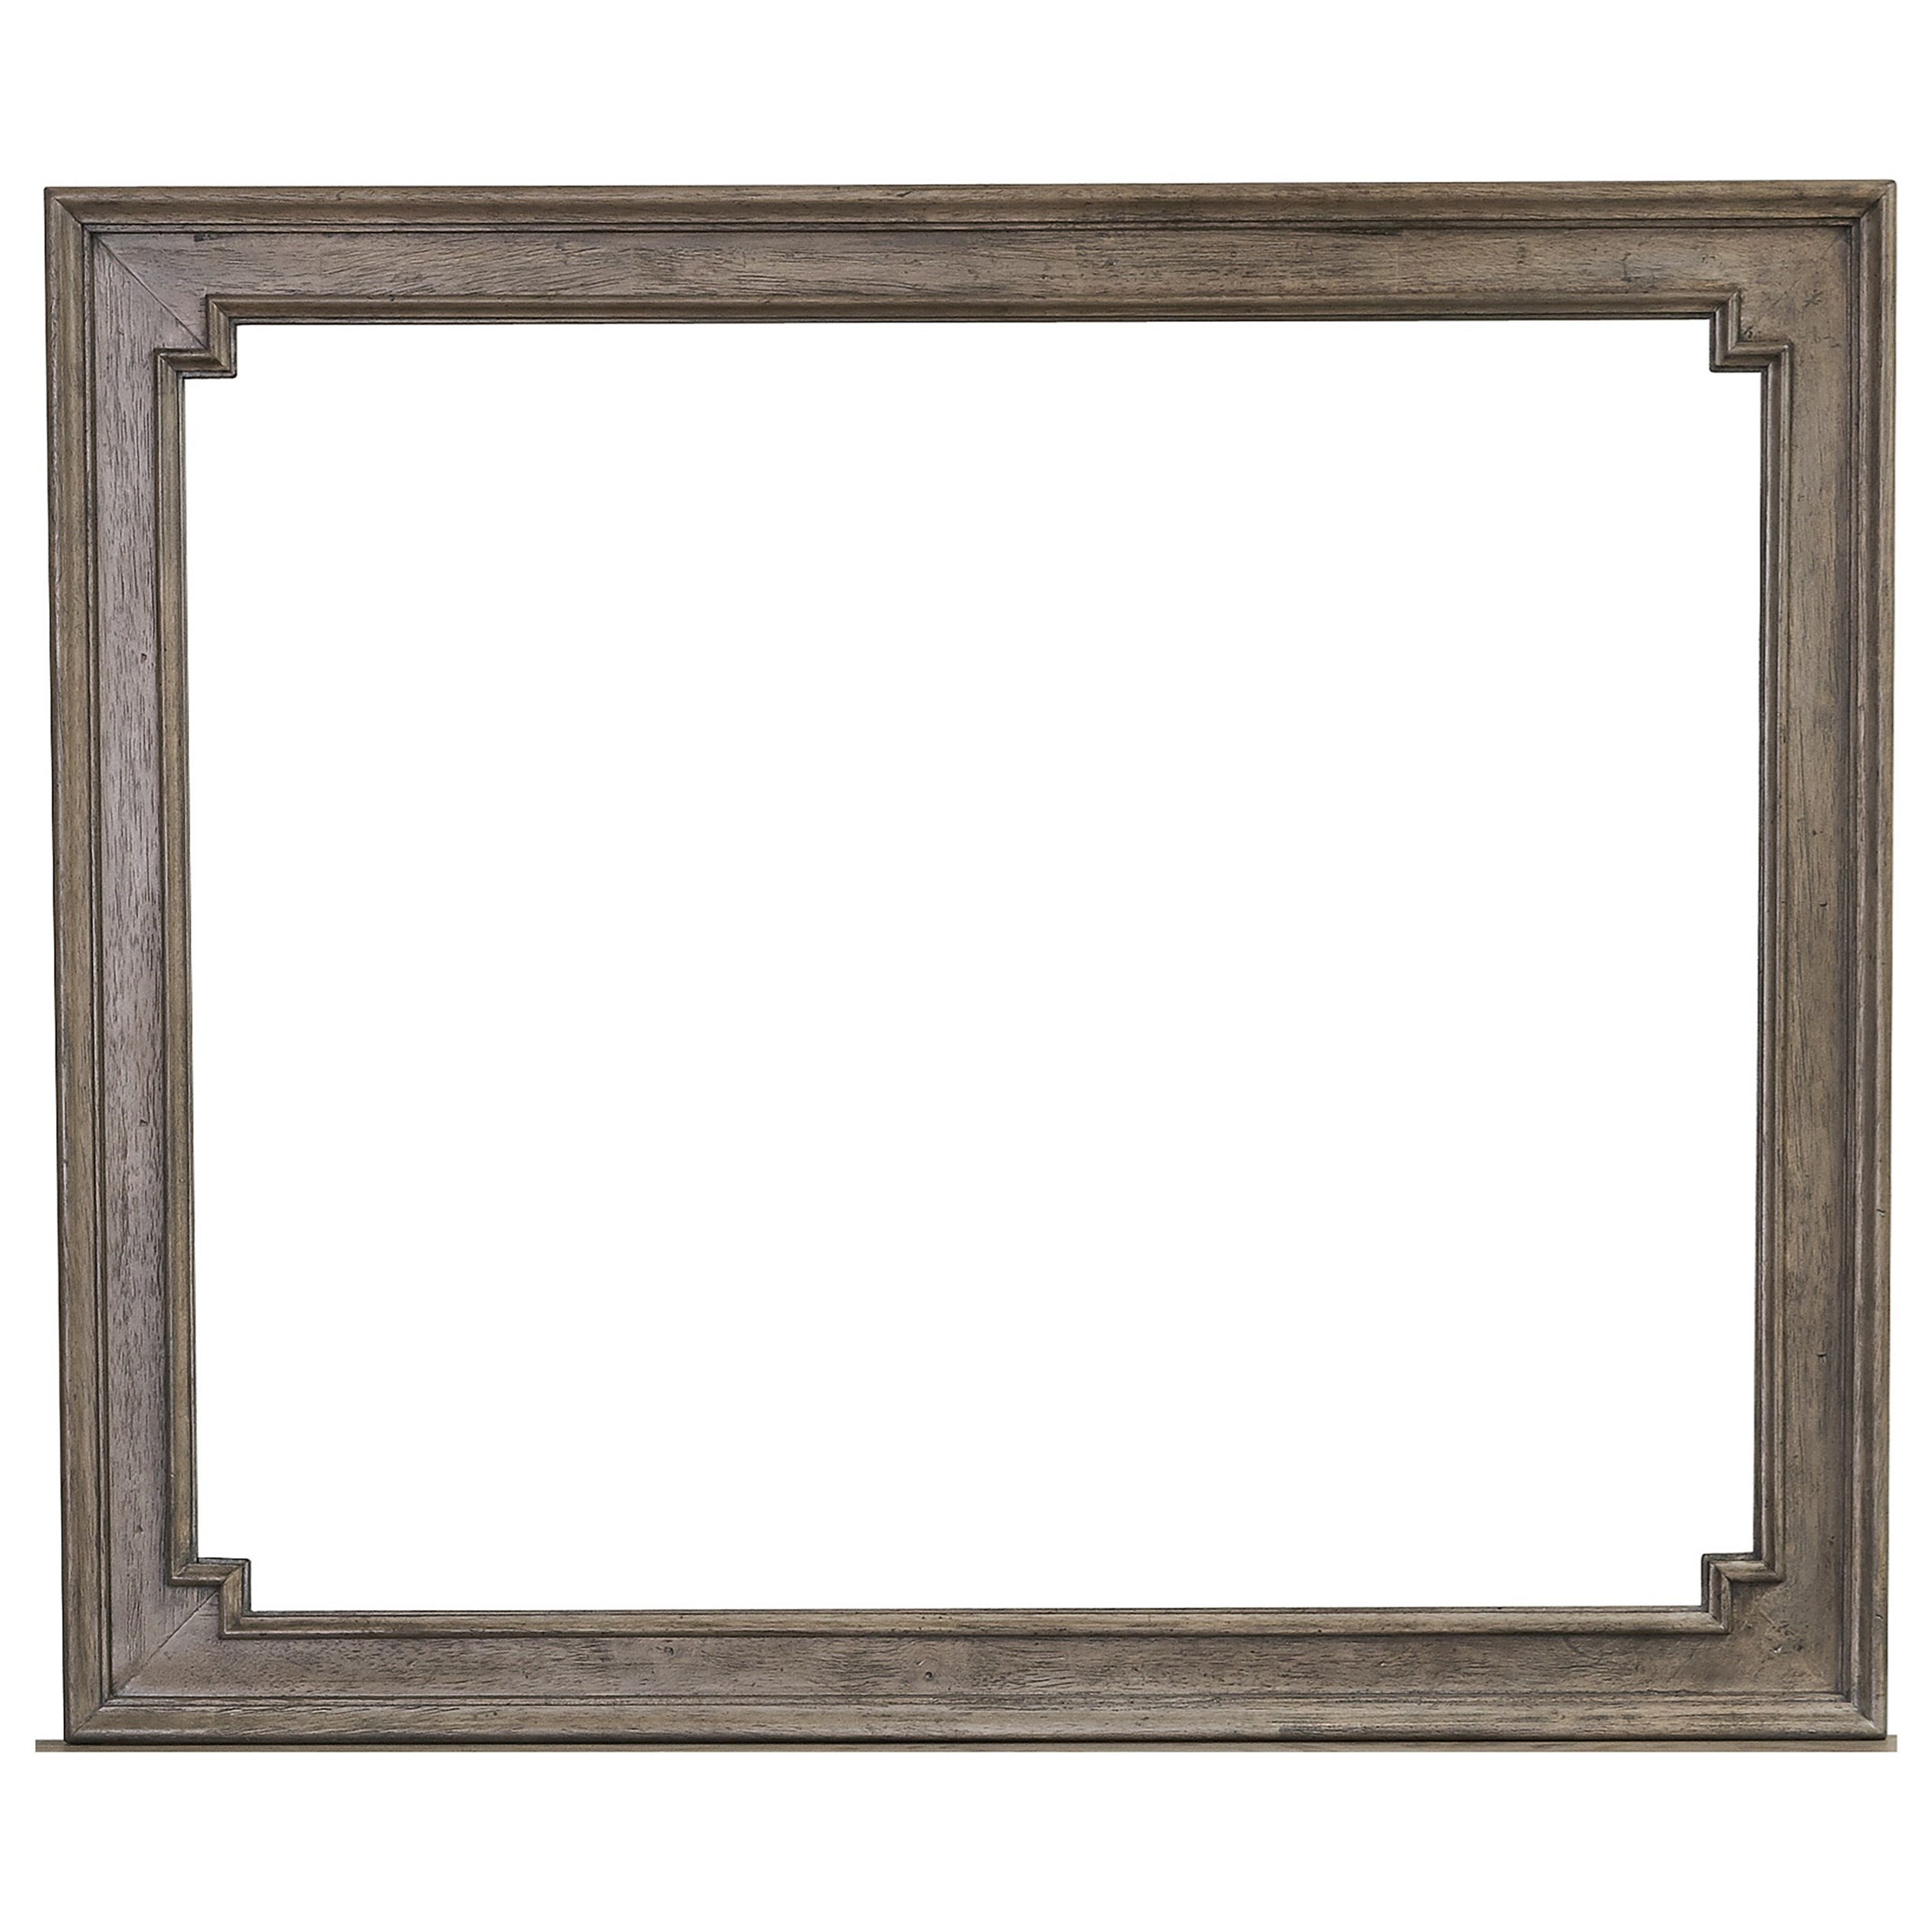 Liege Liege Mirror by Samuel Lawrence at Morris Home